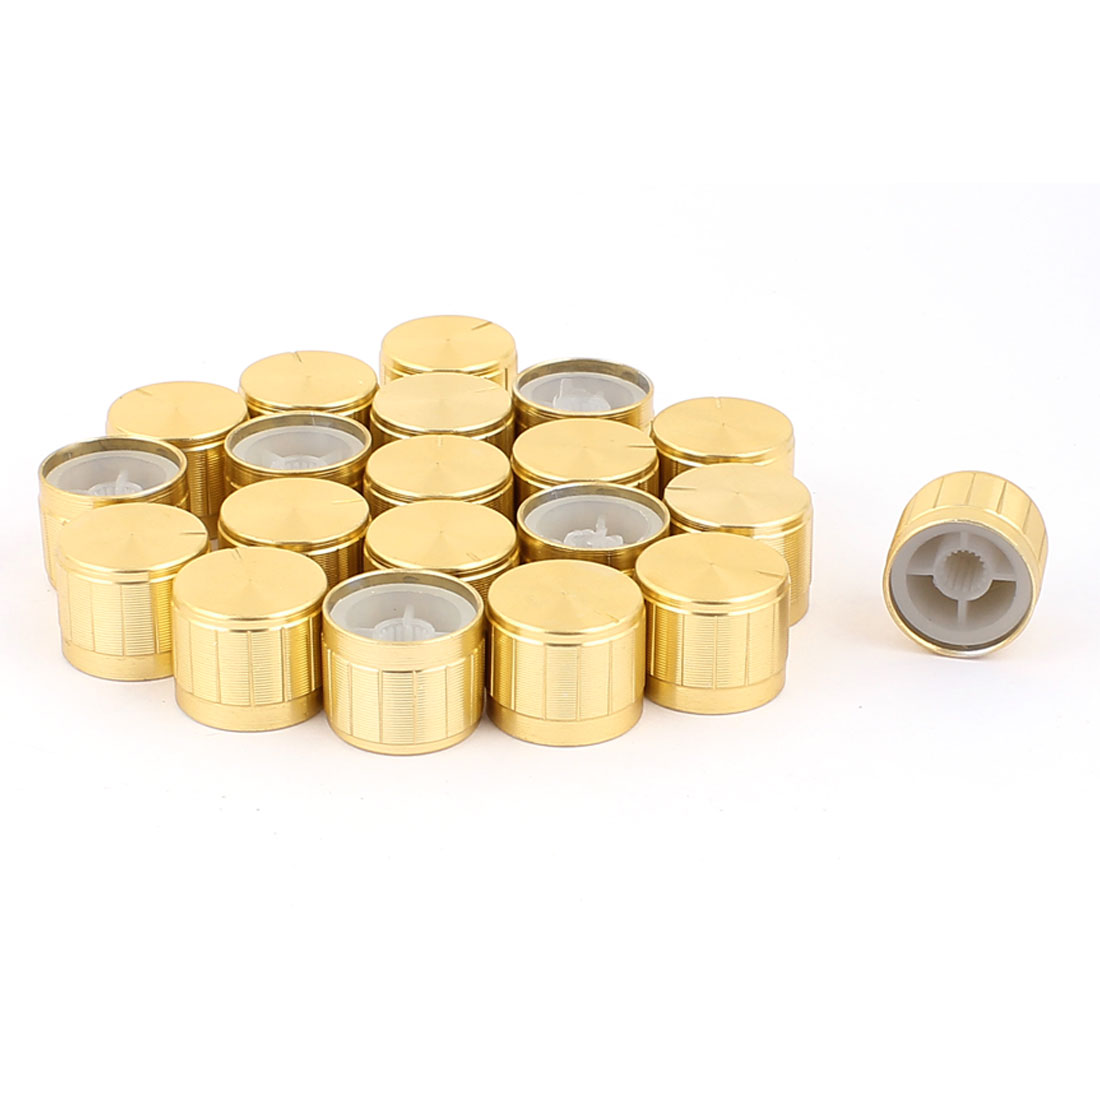 20 Pcs 21mm x 6mm Aluminium Alloy Potentiometer Control Knob Mini Cap Knurled Button Gold Tone